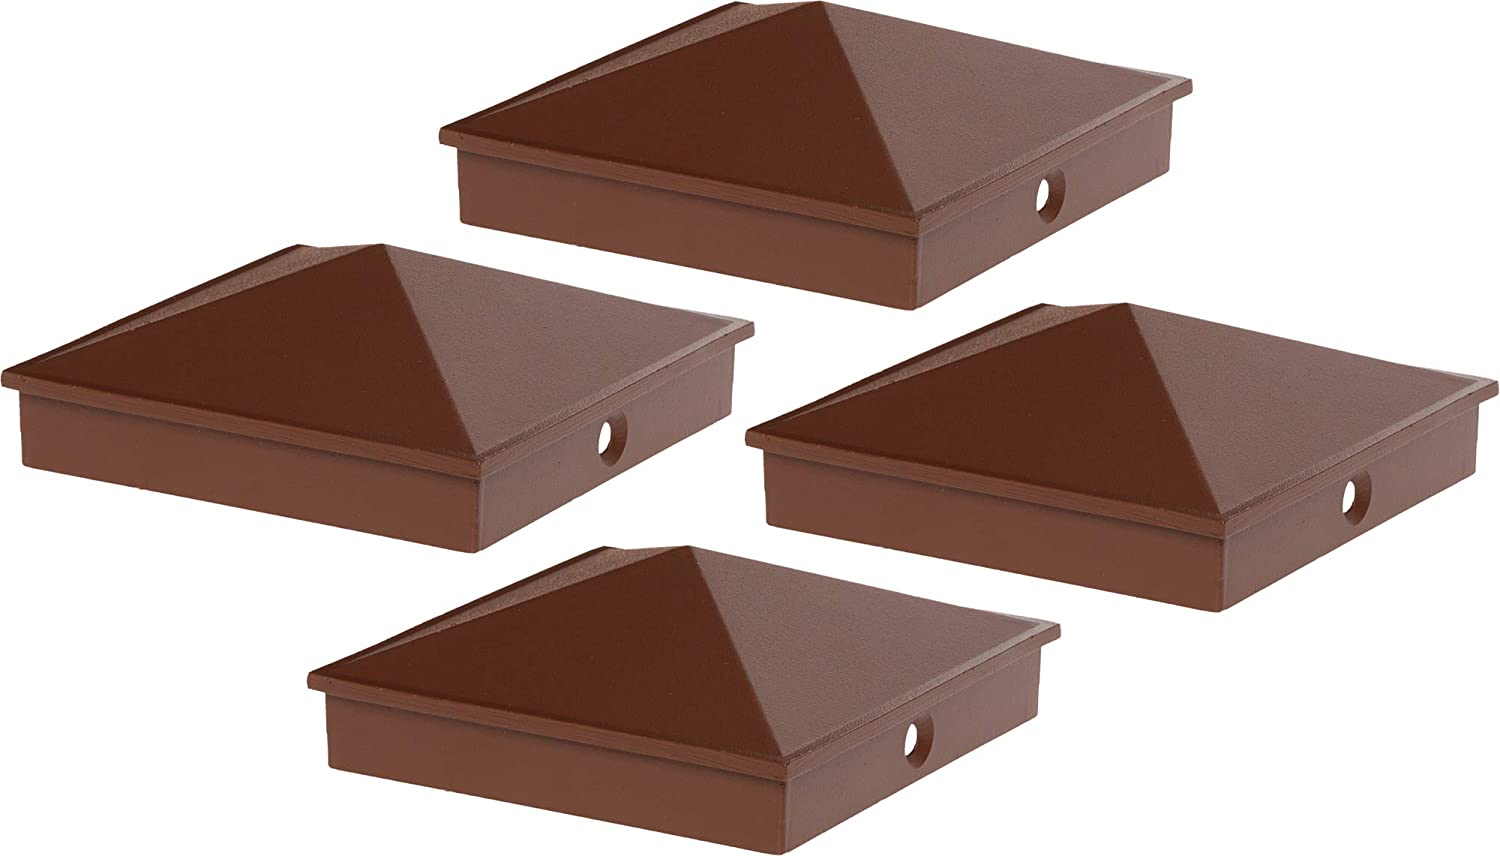 GreenLighting 4x4 Aluminum Pyramid Post Cap Cover for Nominal Wood Posts (Brown, 4 Pack)